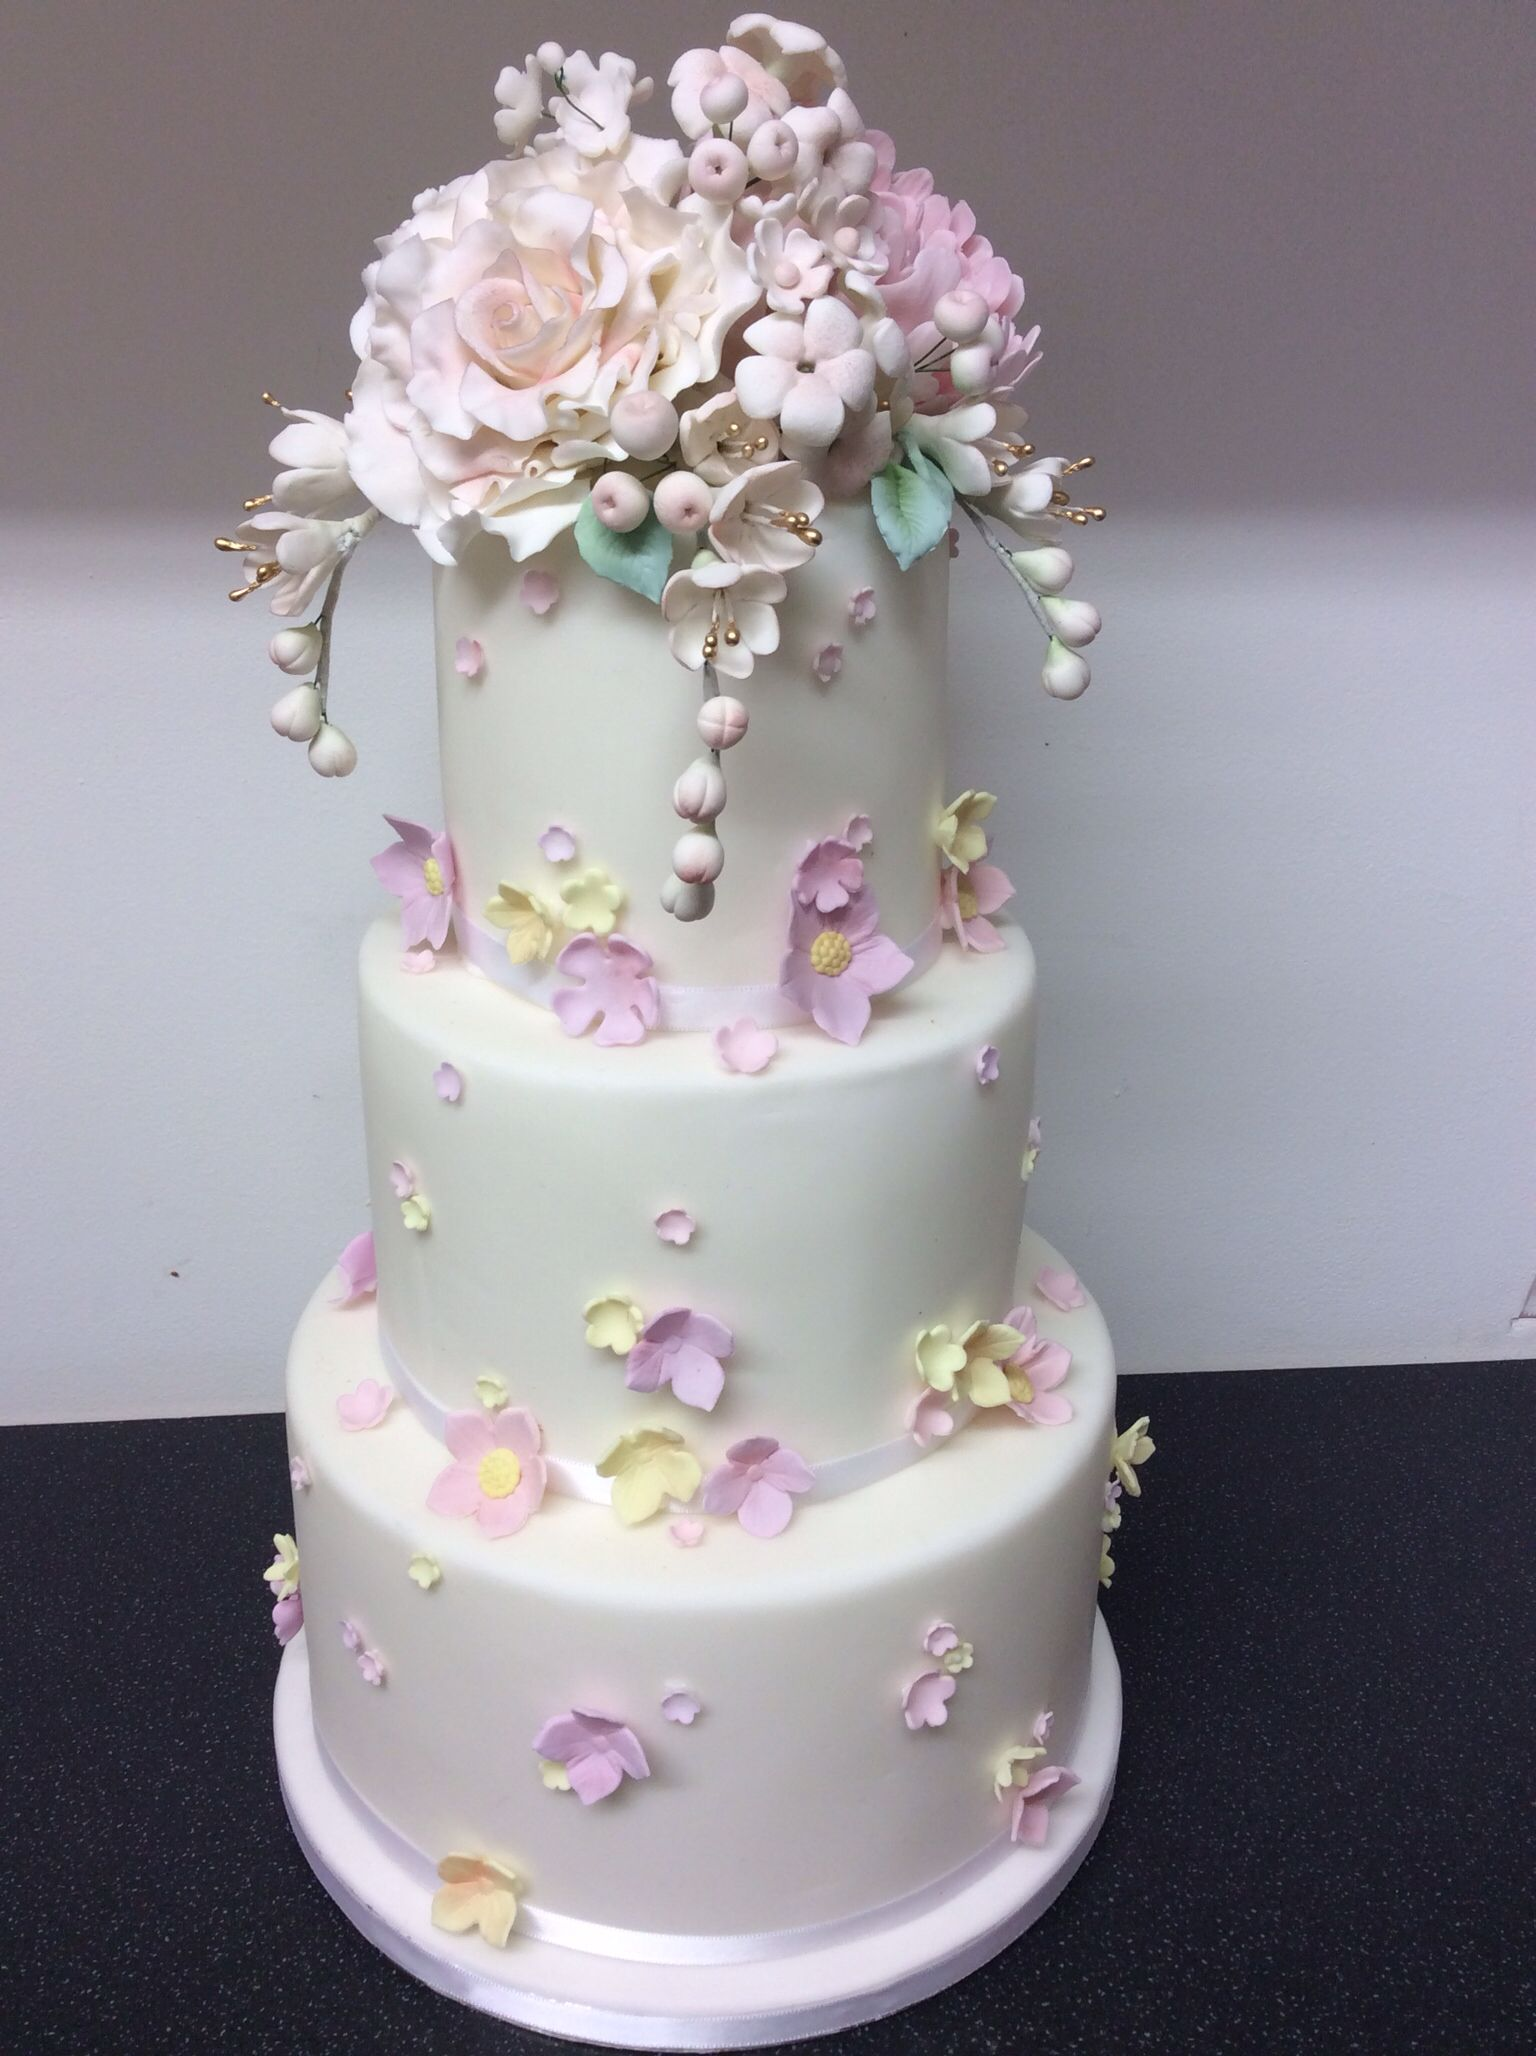 Floral Vintage Themed Wedding Cake My Wedding Cakes Pinterest